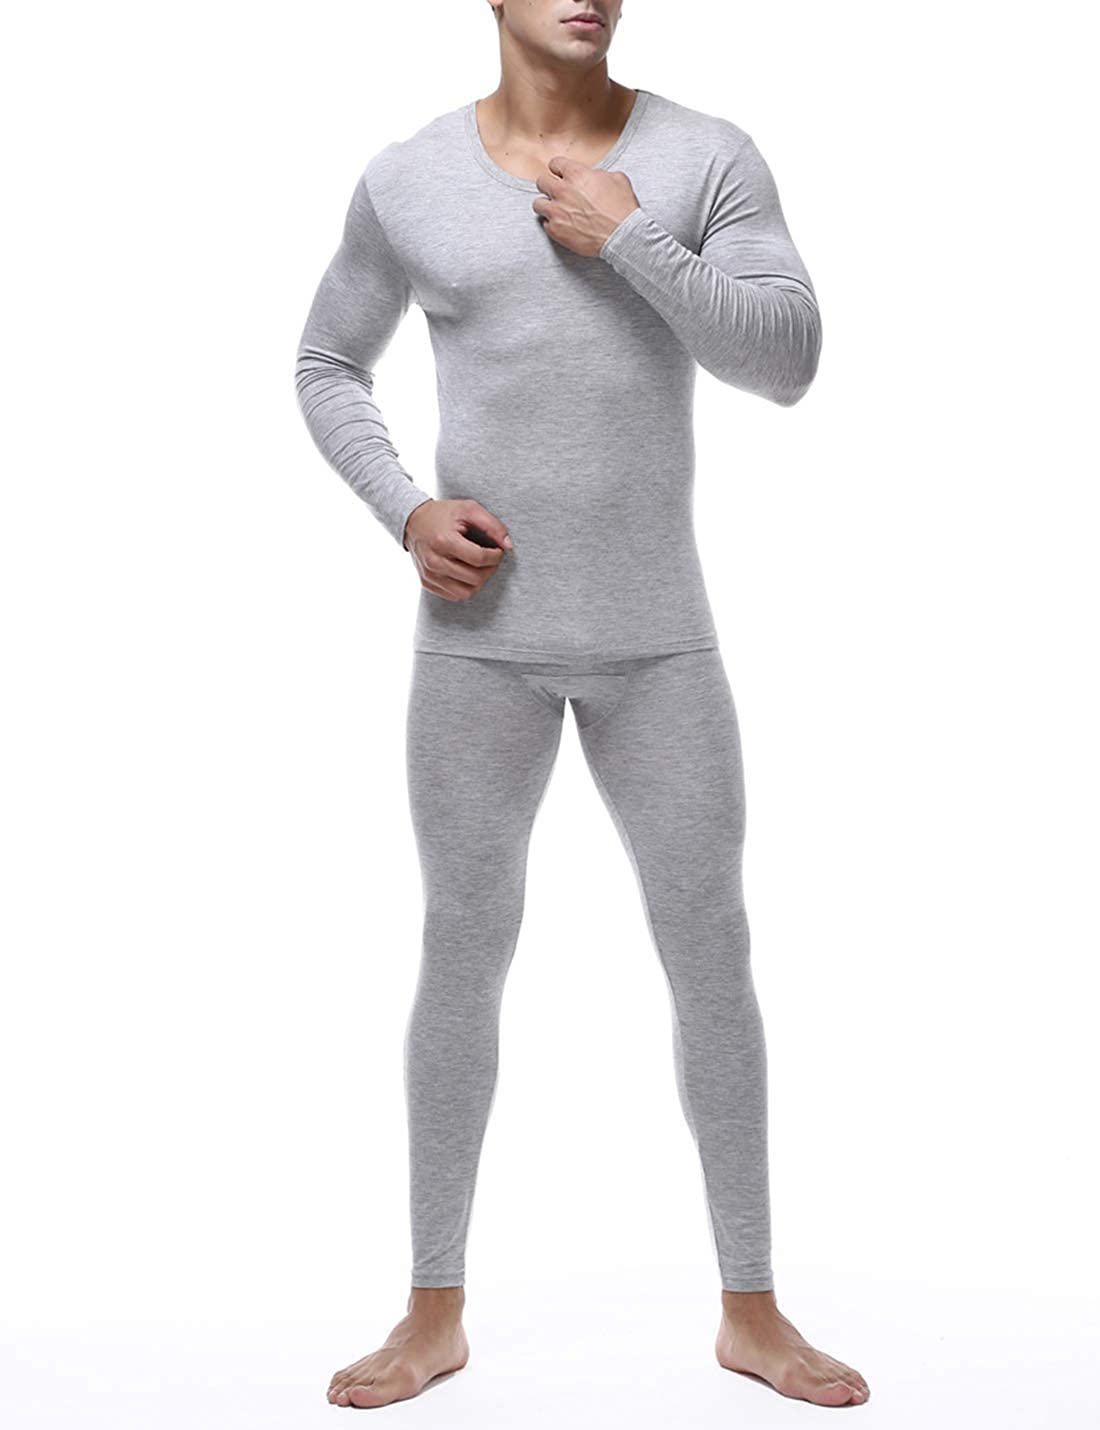 Locachy Mens Ultra Soft Thermal Underwear Stretchy Thin Long Johns Set with Modal Cotton Long Johns Top /& Bottom Set